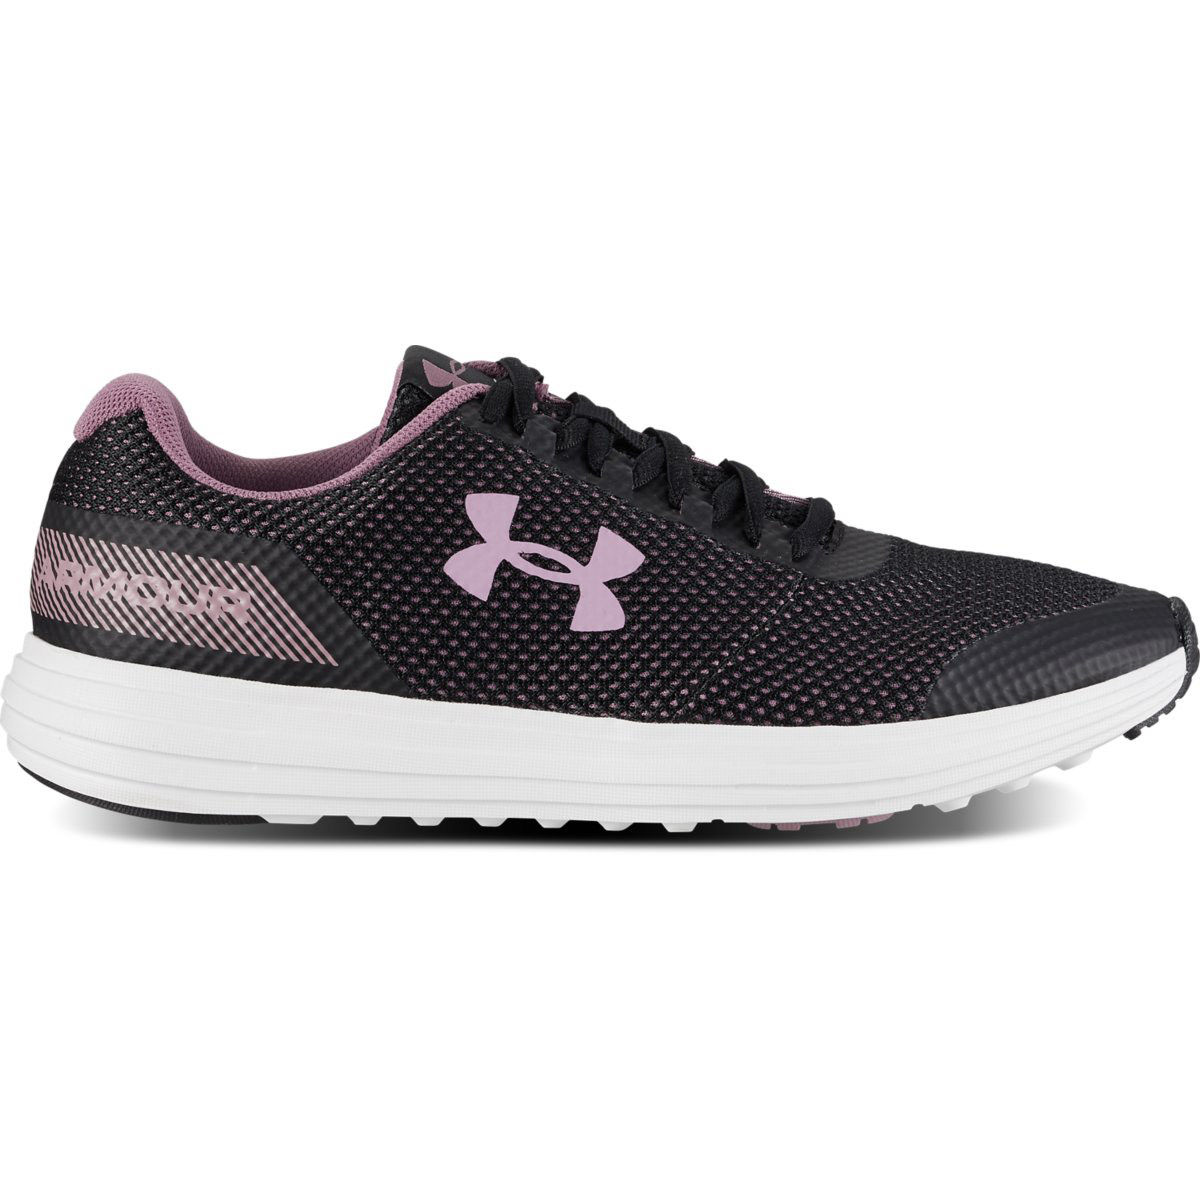 Under Armour Surge Womens Running Shoe